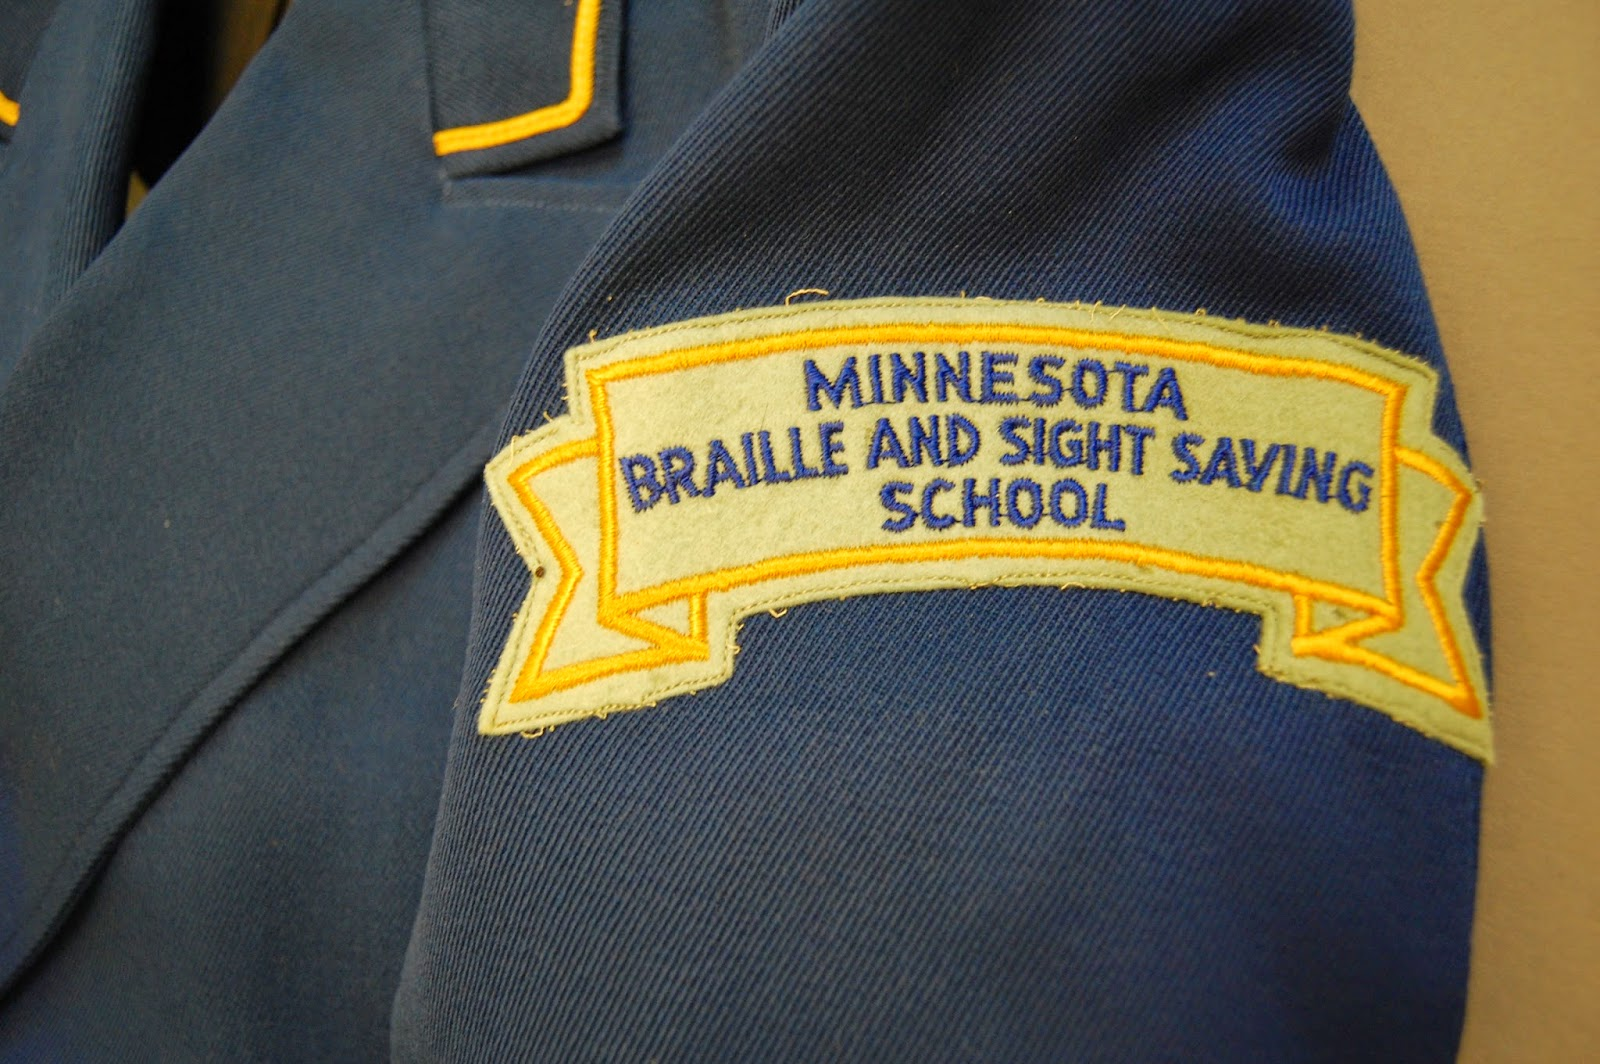 Minnesota Braille School for the Blind band uniform close up view